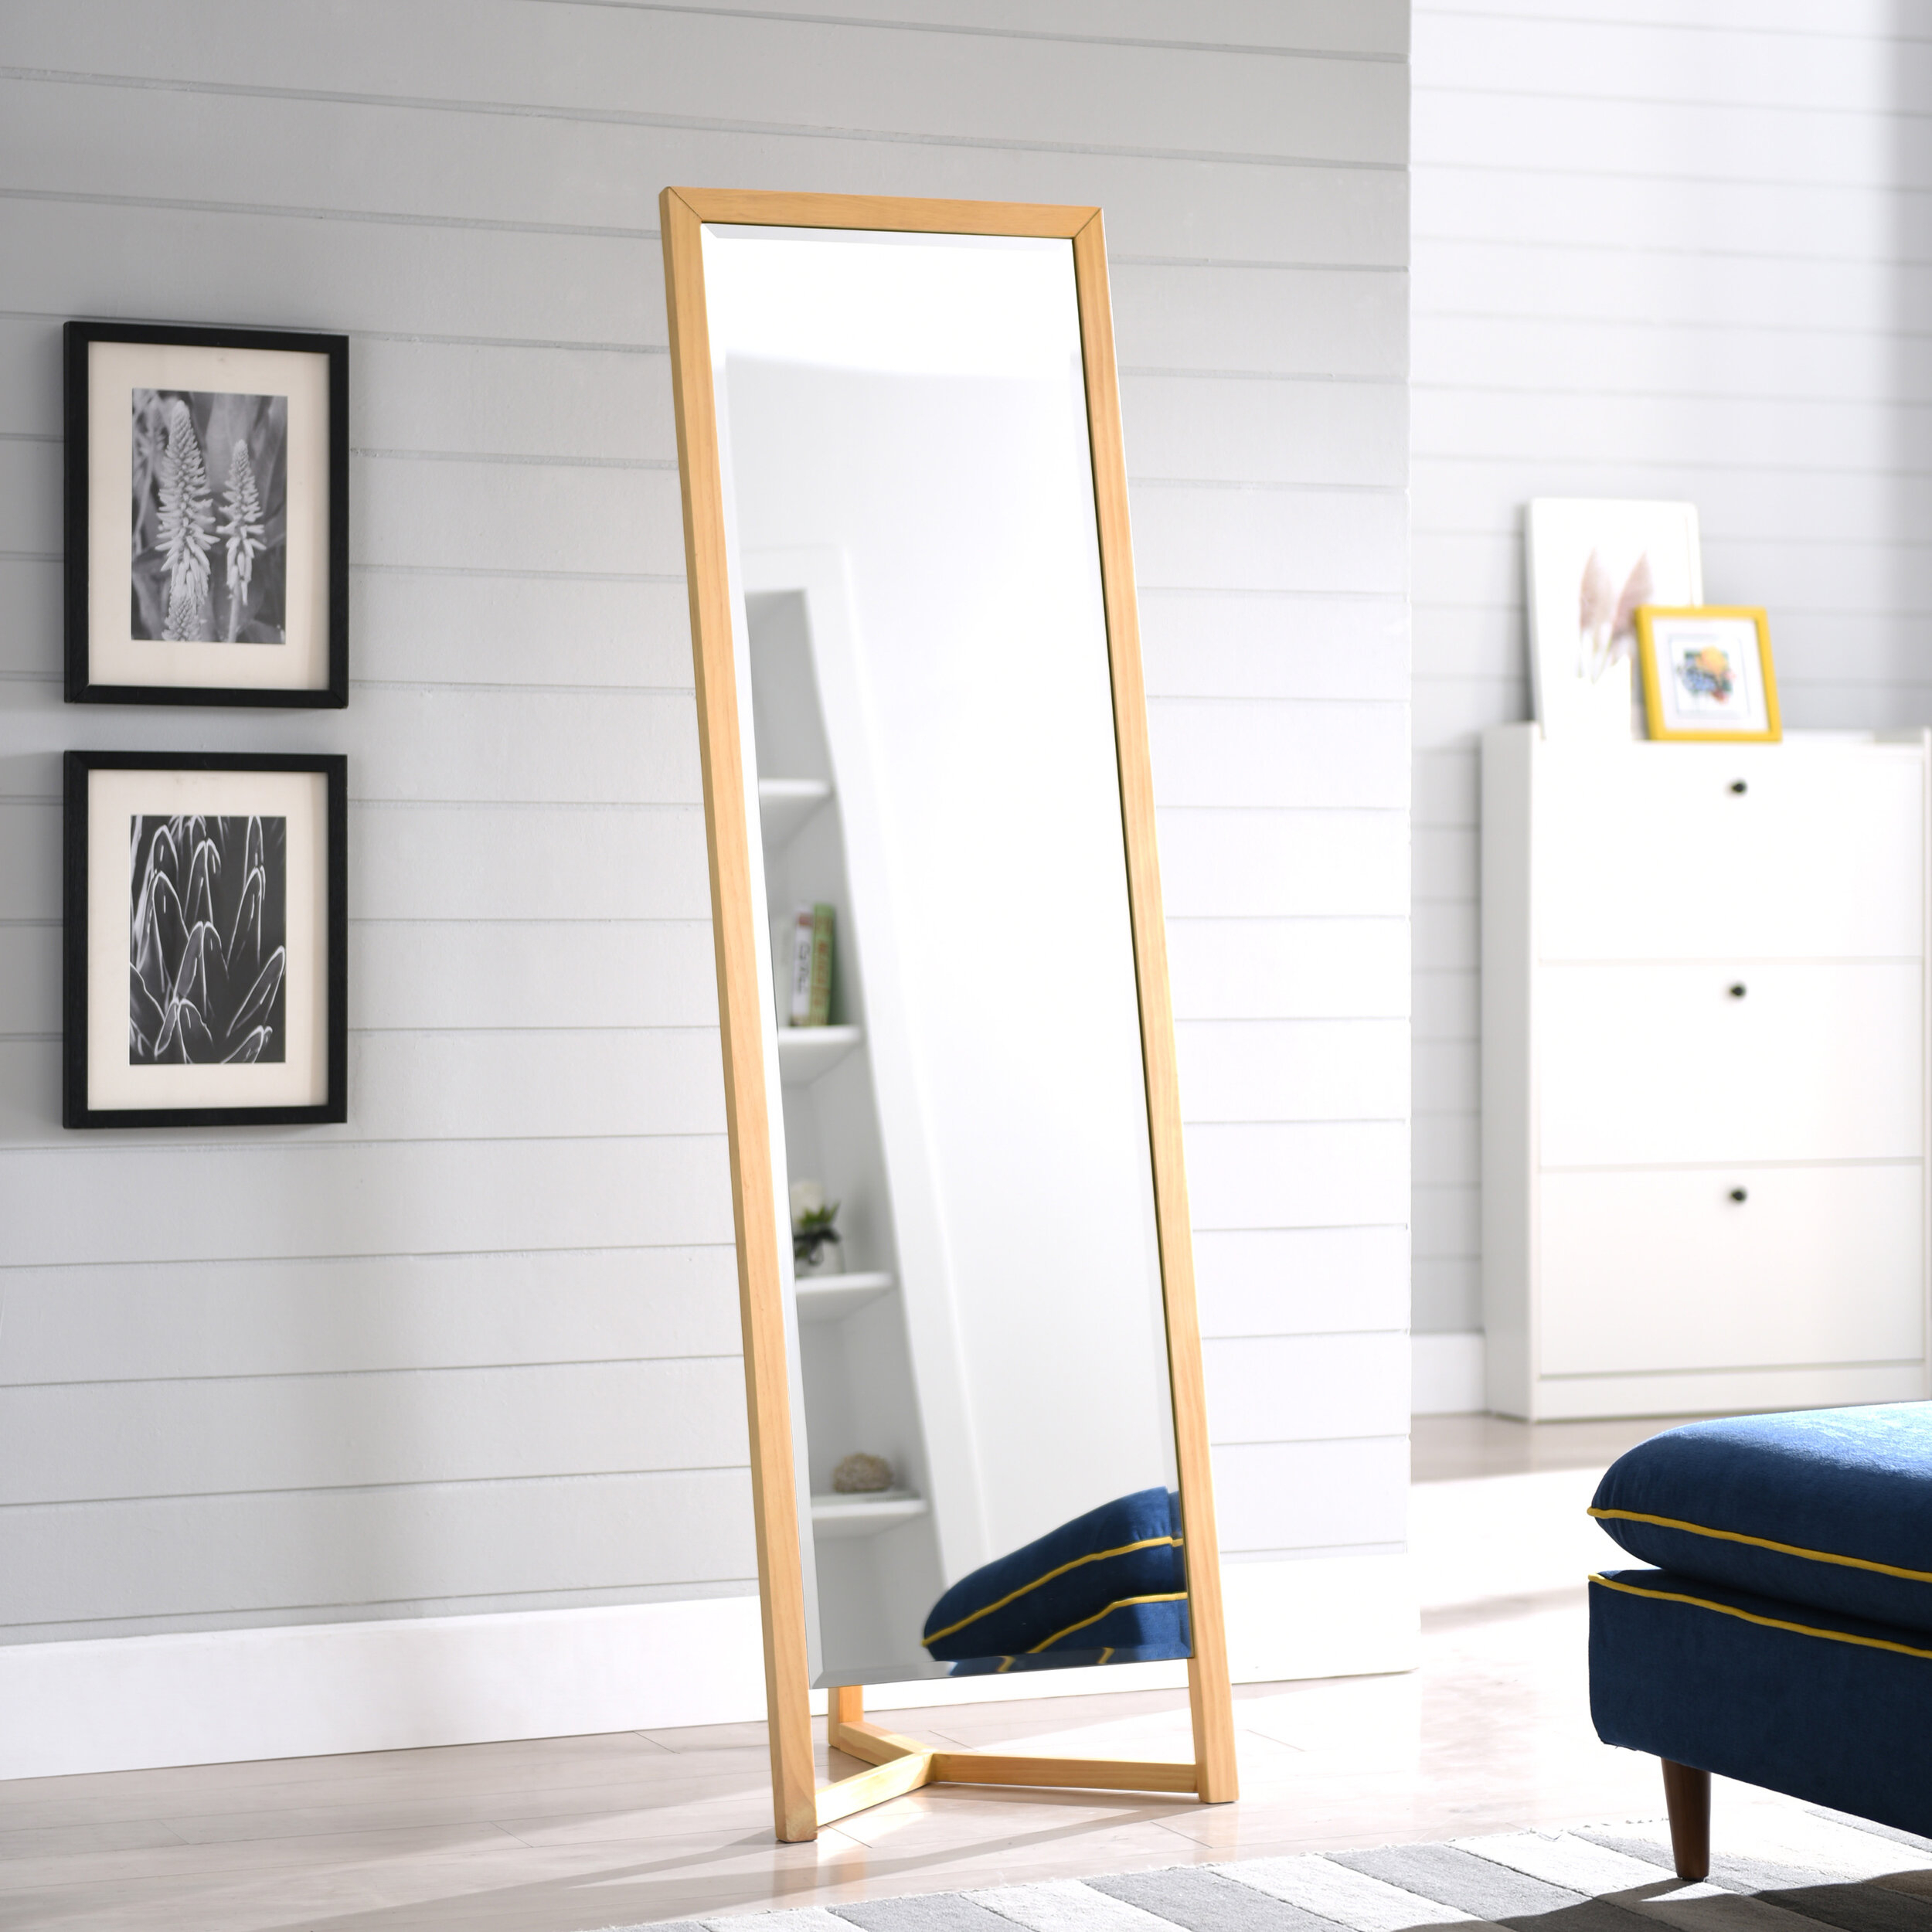 Springs Modern And Contemporary Distressed Full Length Mirror Regarding Jameson Modern & Contemporary Full Length Mirrors (View 23 of 30)